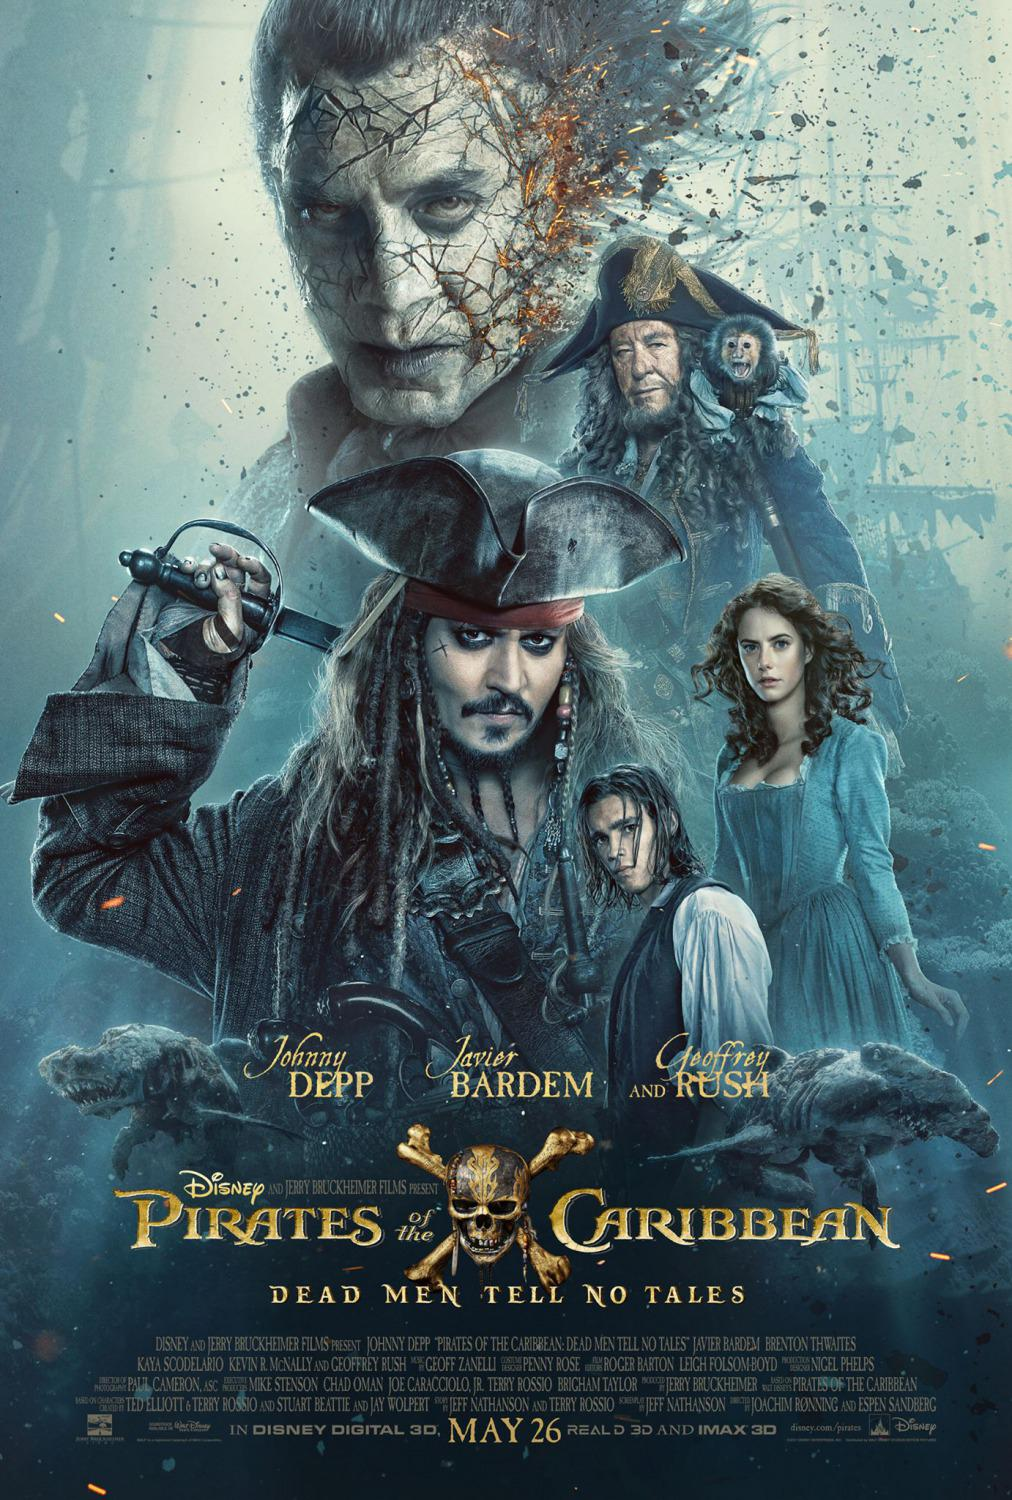 Pirates of the Caribbean 5 Dead Men Tell no Tales - Pirati dei Caraibi la vendetta di Salazar - poster - Javier Bardem - Johnny Depp